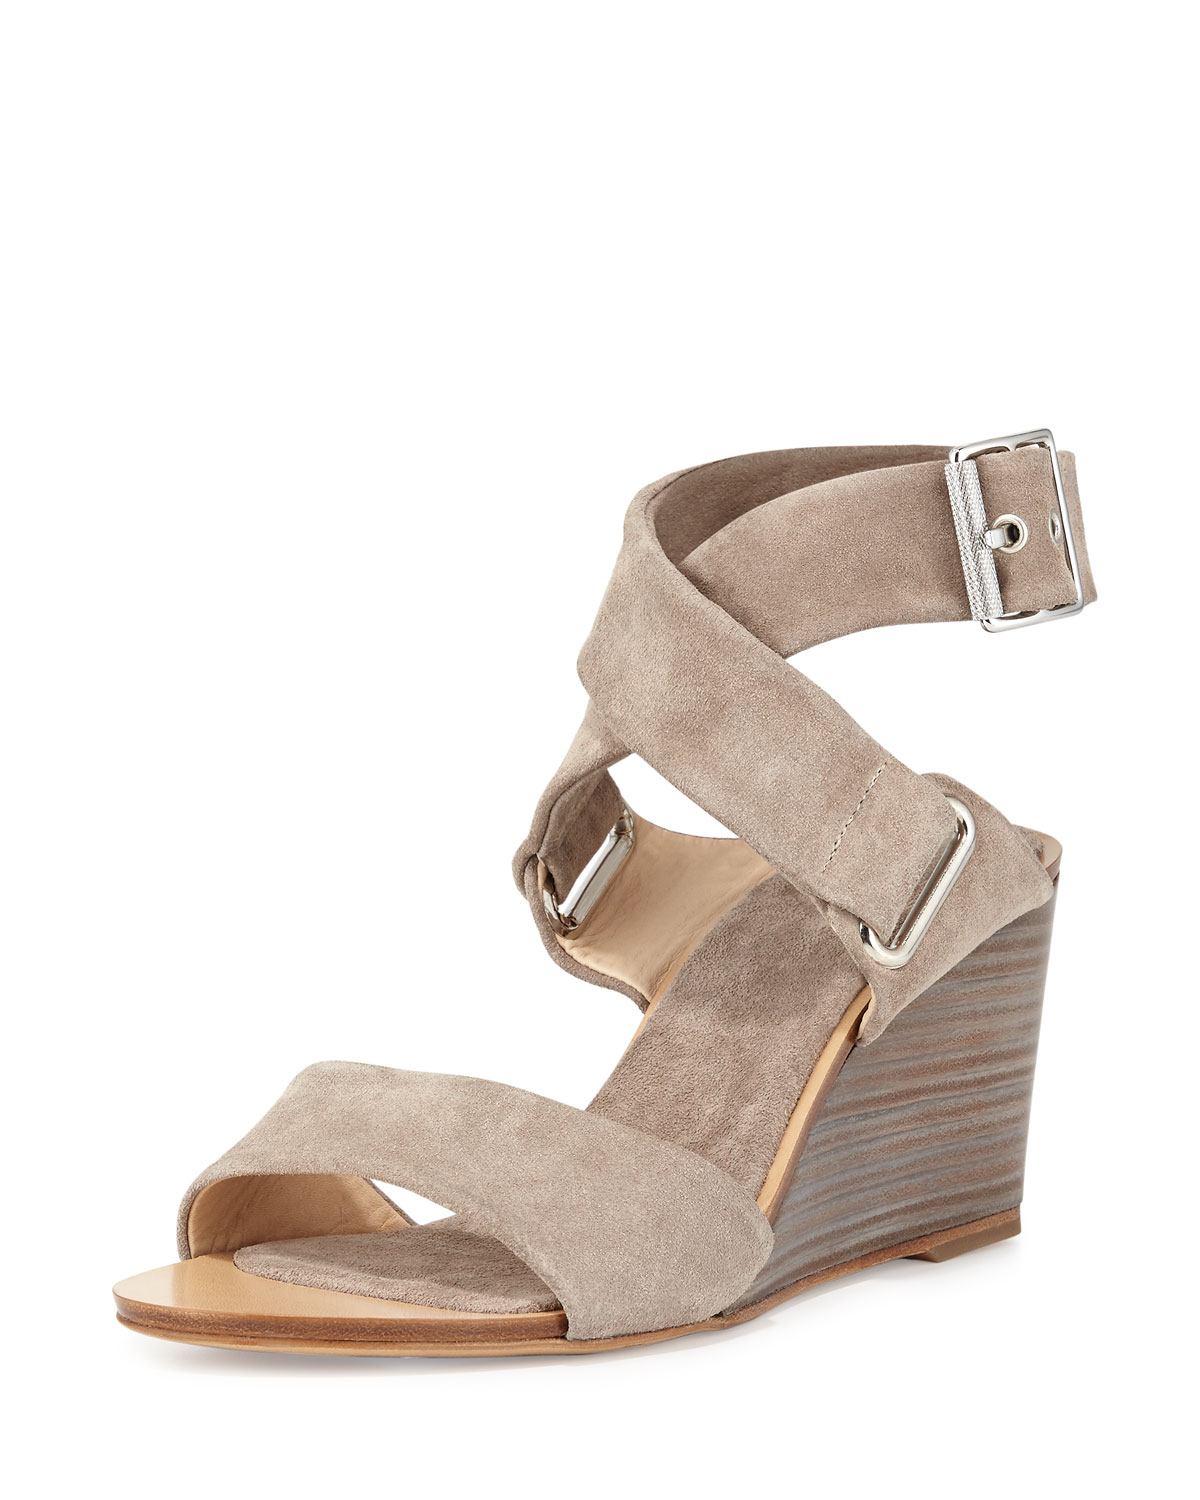 Rag & Bone Damien Suede Wedges tumblr outlet great deals low price for sale free shipping explore oikFl